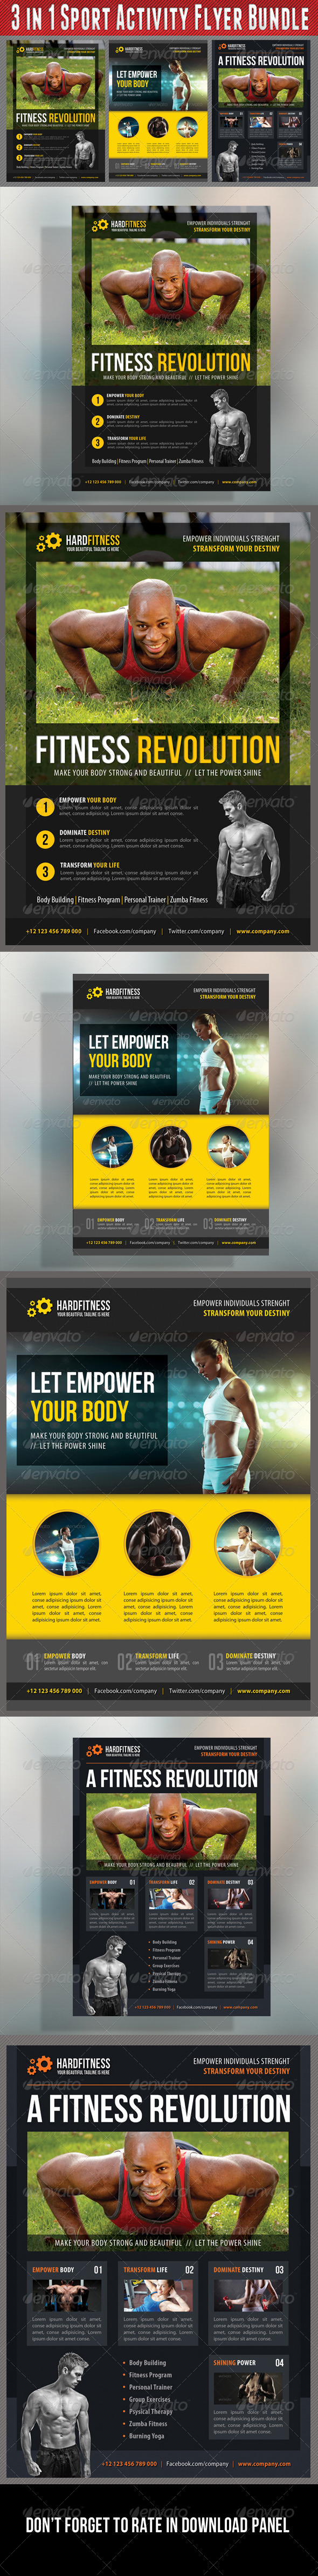 GraphicRiver 3 in 1 Sport Activity Flyer Bundle 09 8242476